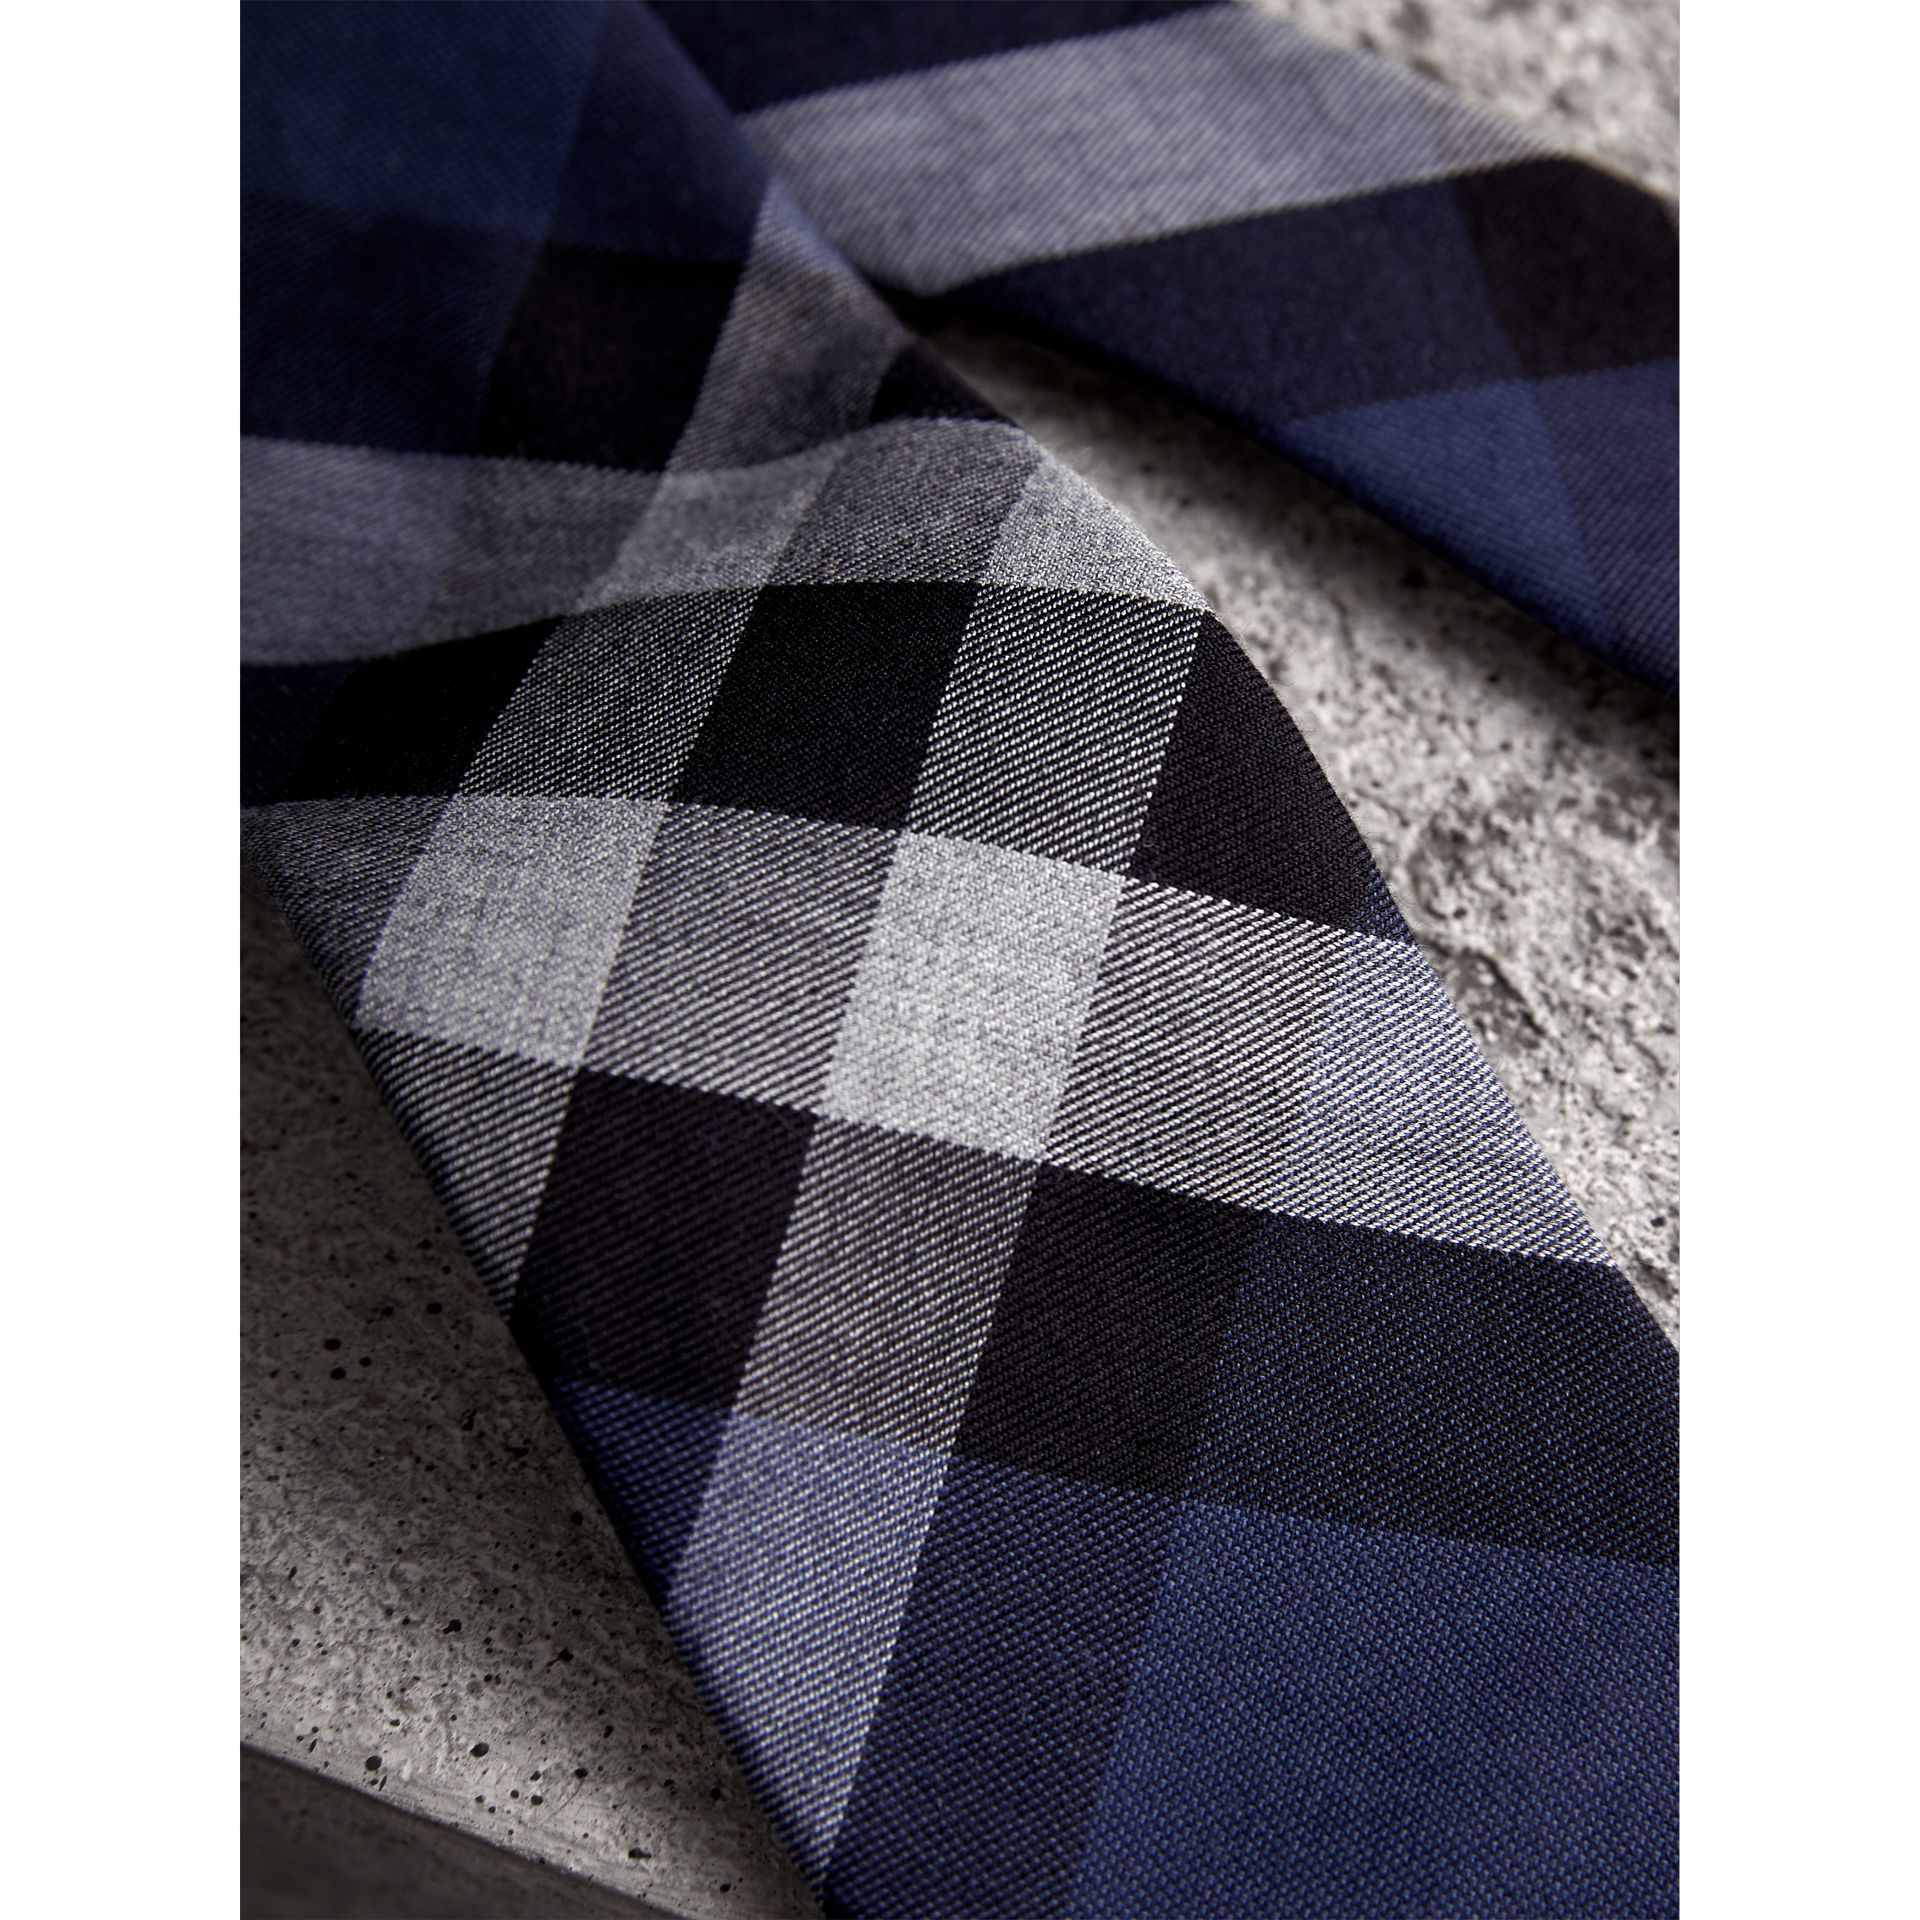 Modern Cut Check Cotton Cashmere Tie in Canvas Blue - Men | Burberry Australia - gallery image 2